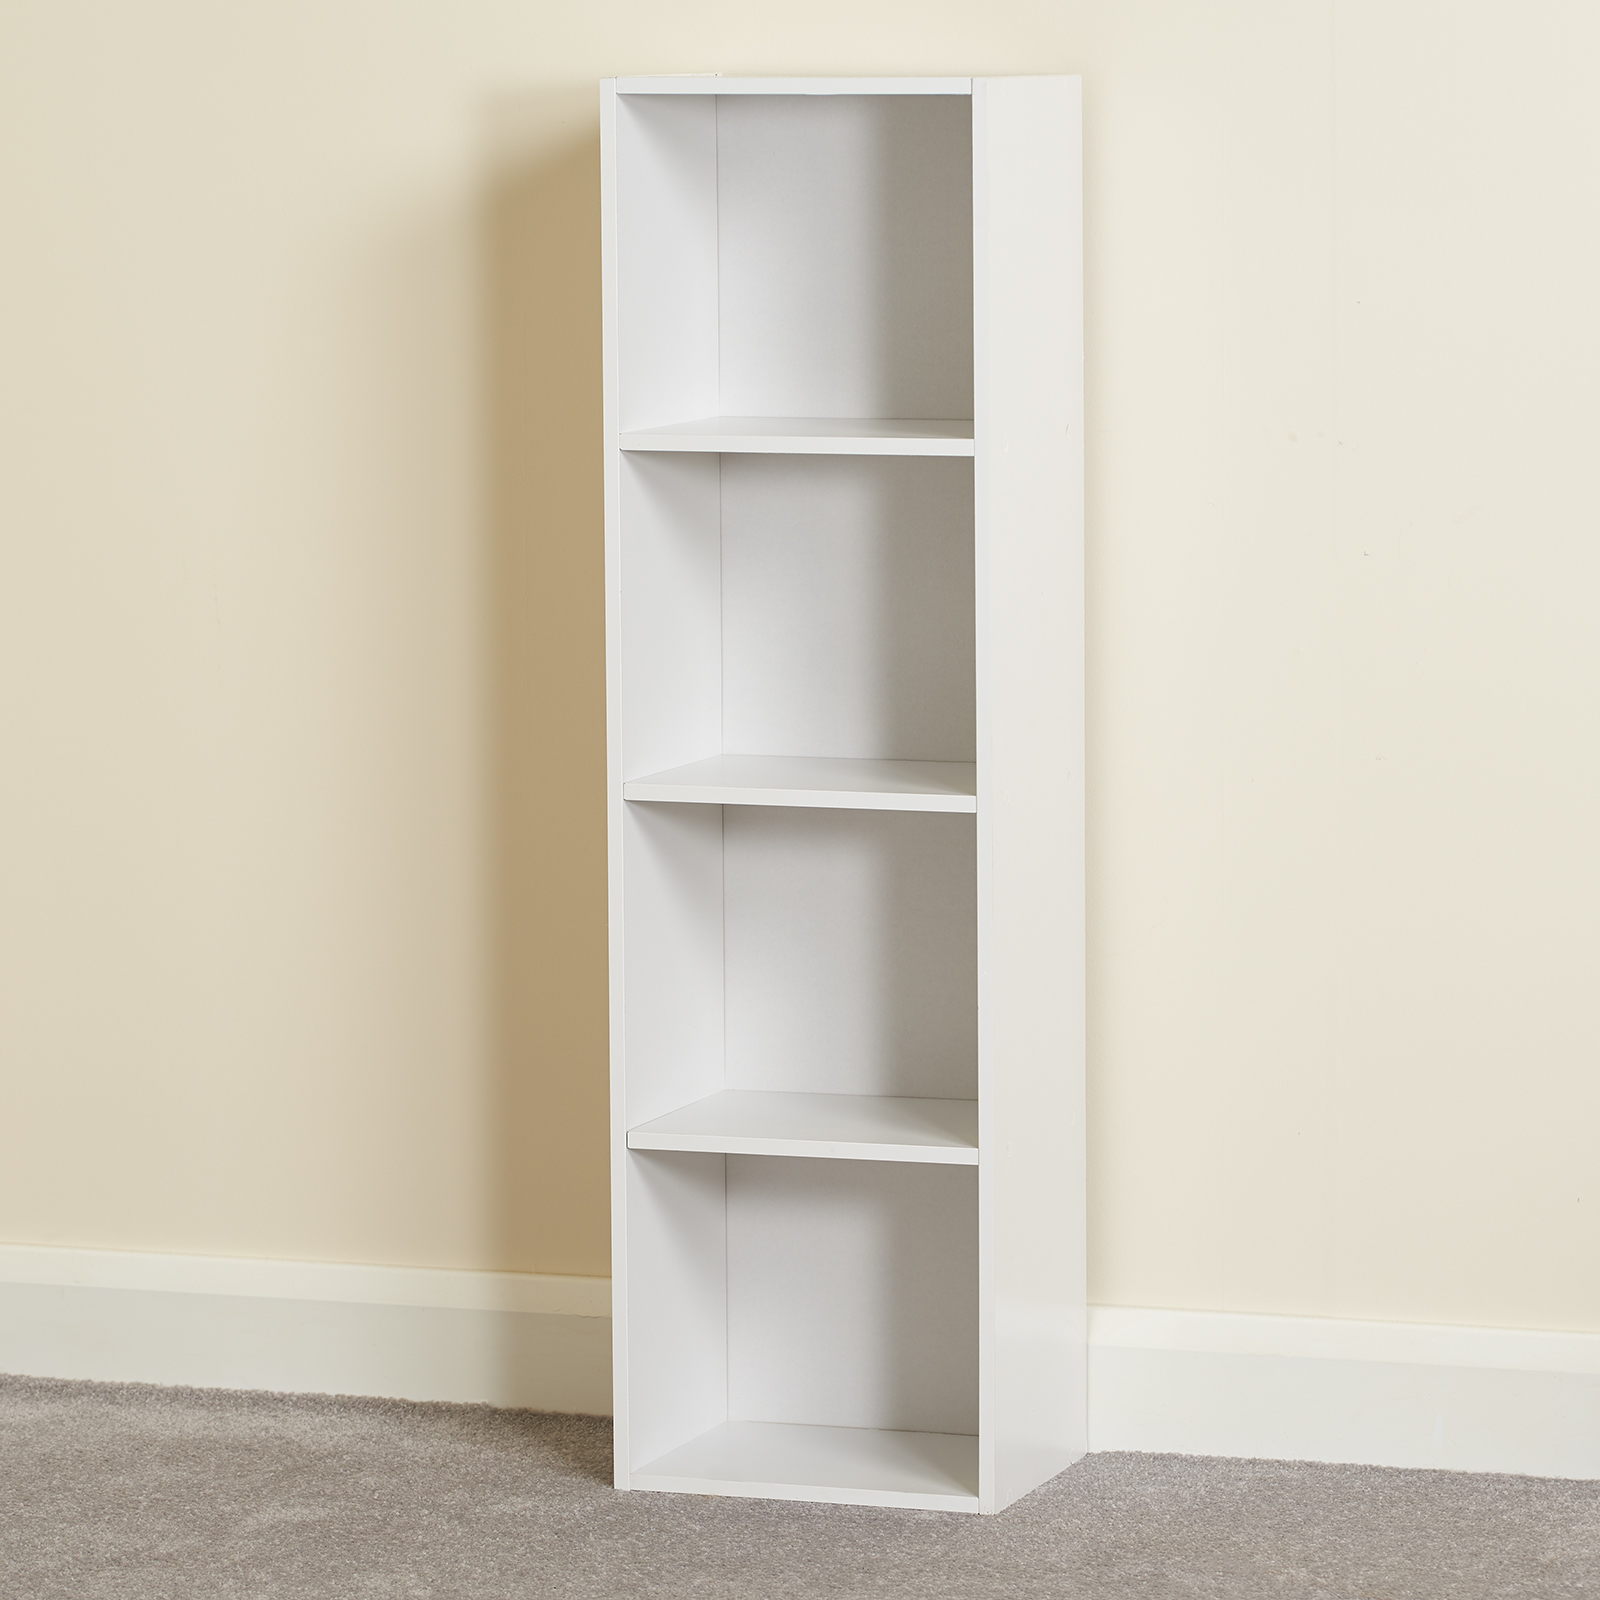 Hartleys-4-Tier-White-Bookcase-Wooden-Display-Shelving-Unit-amp-Fabric-Storage-Box thumbnail 12